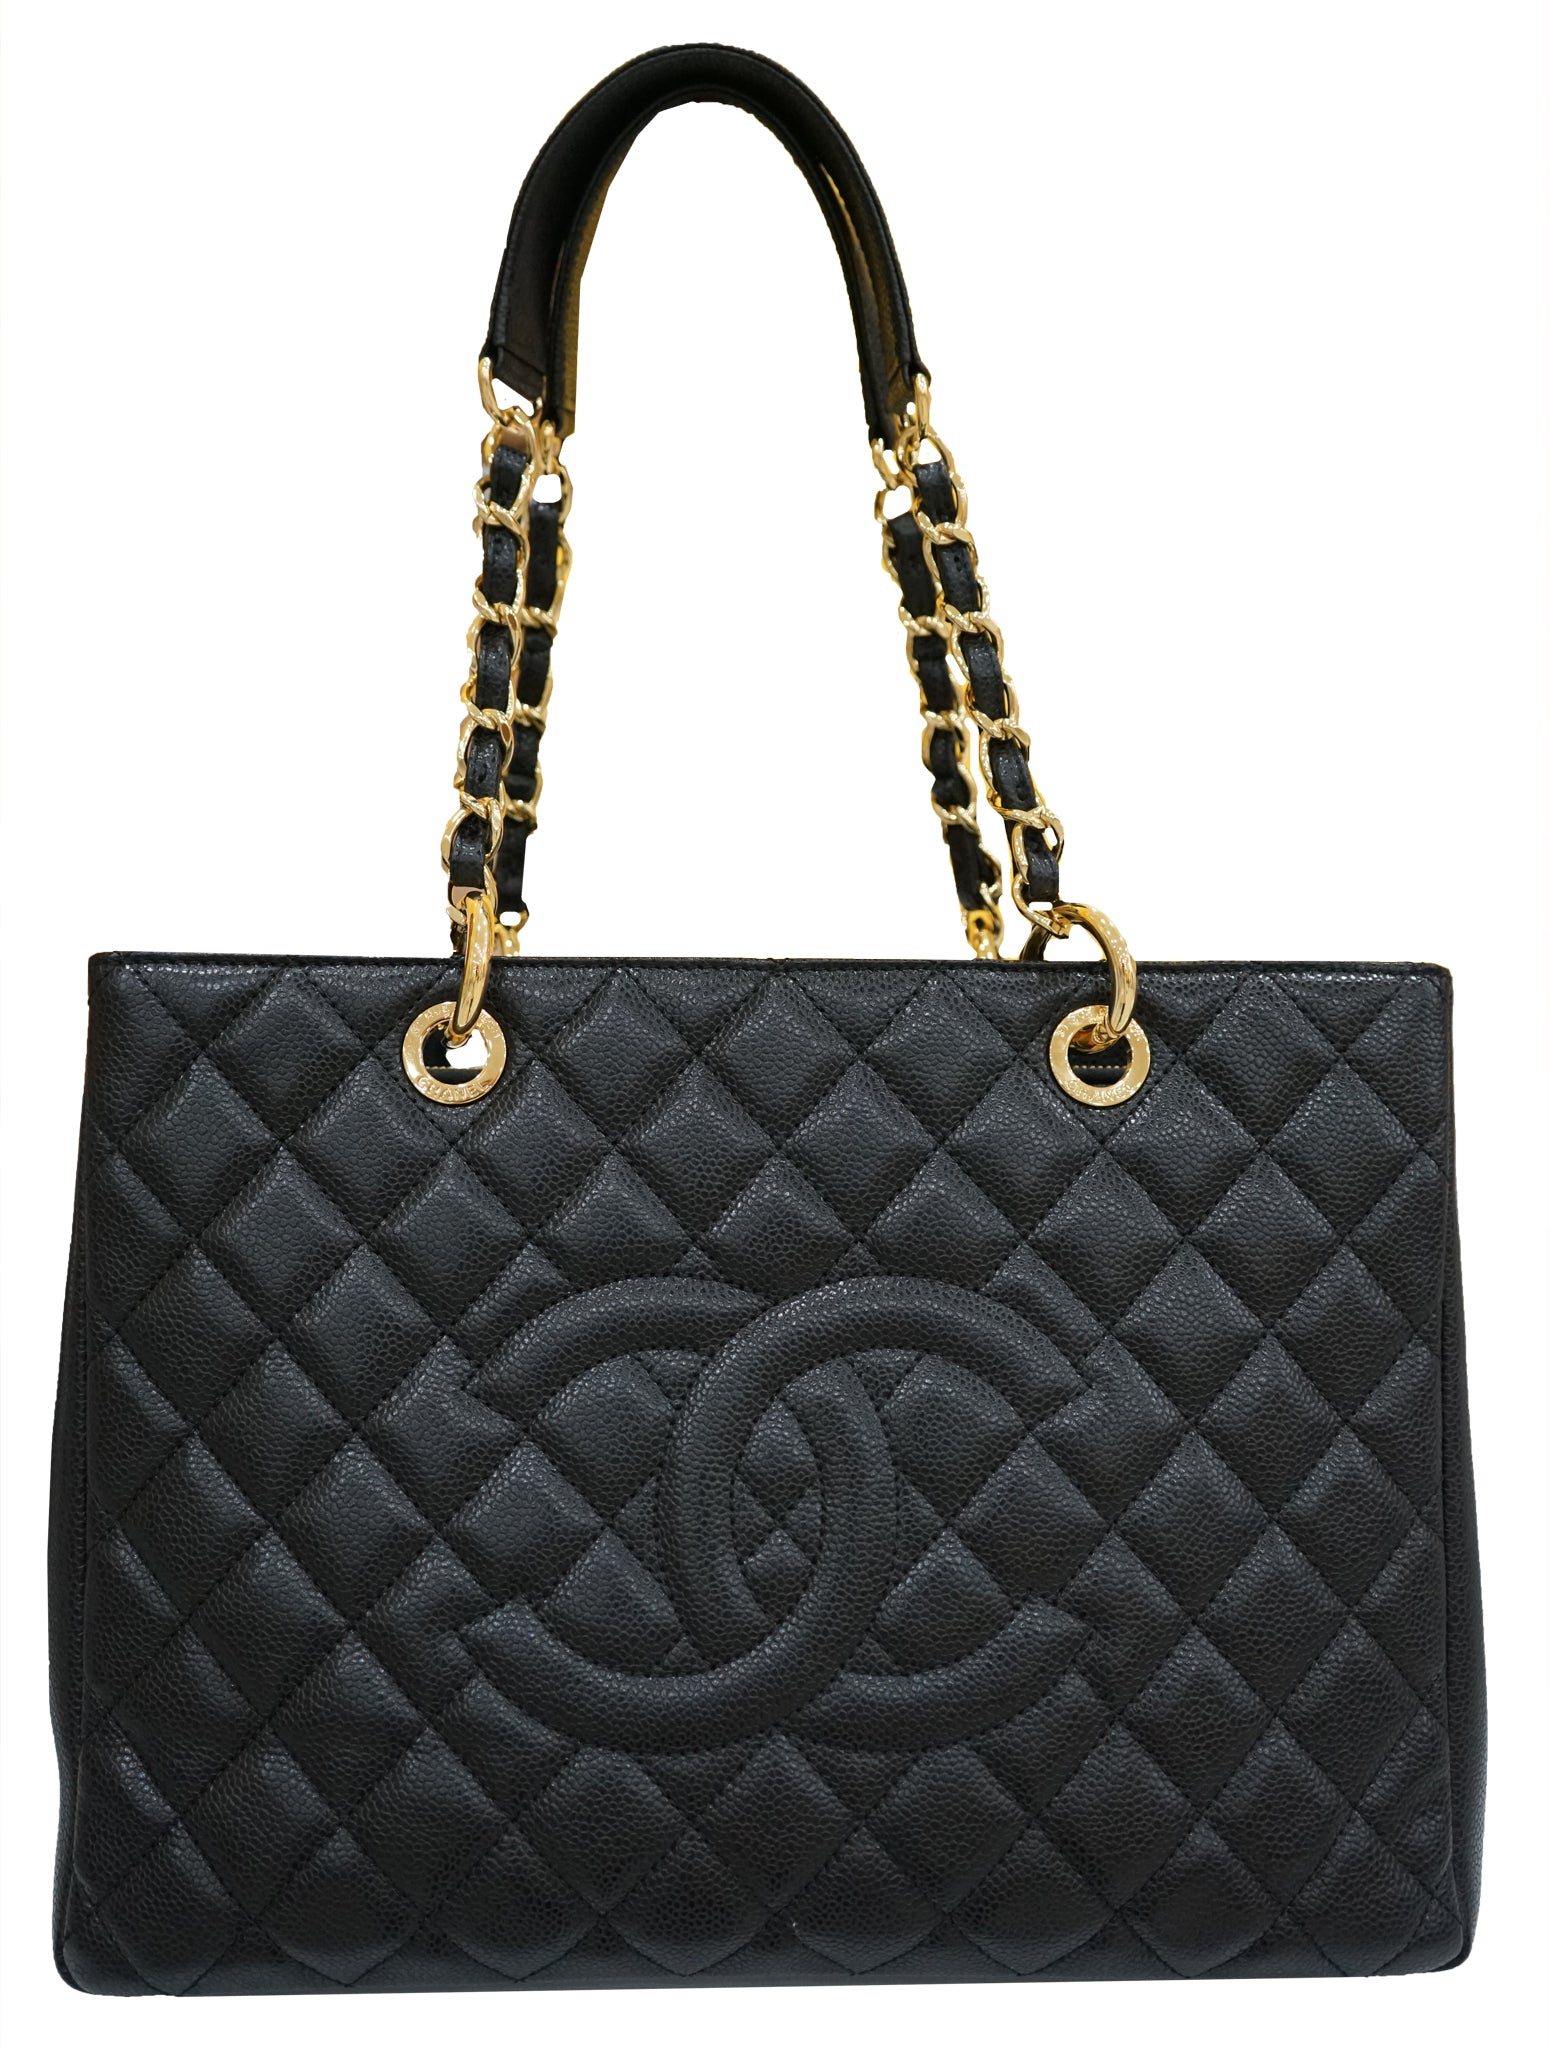 Chanel Bag, Chanel ladies Bag, Chanel Black Bag